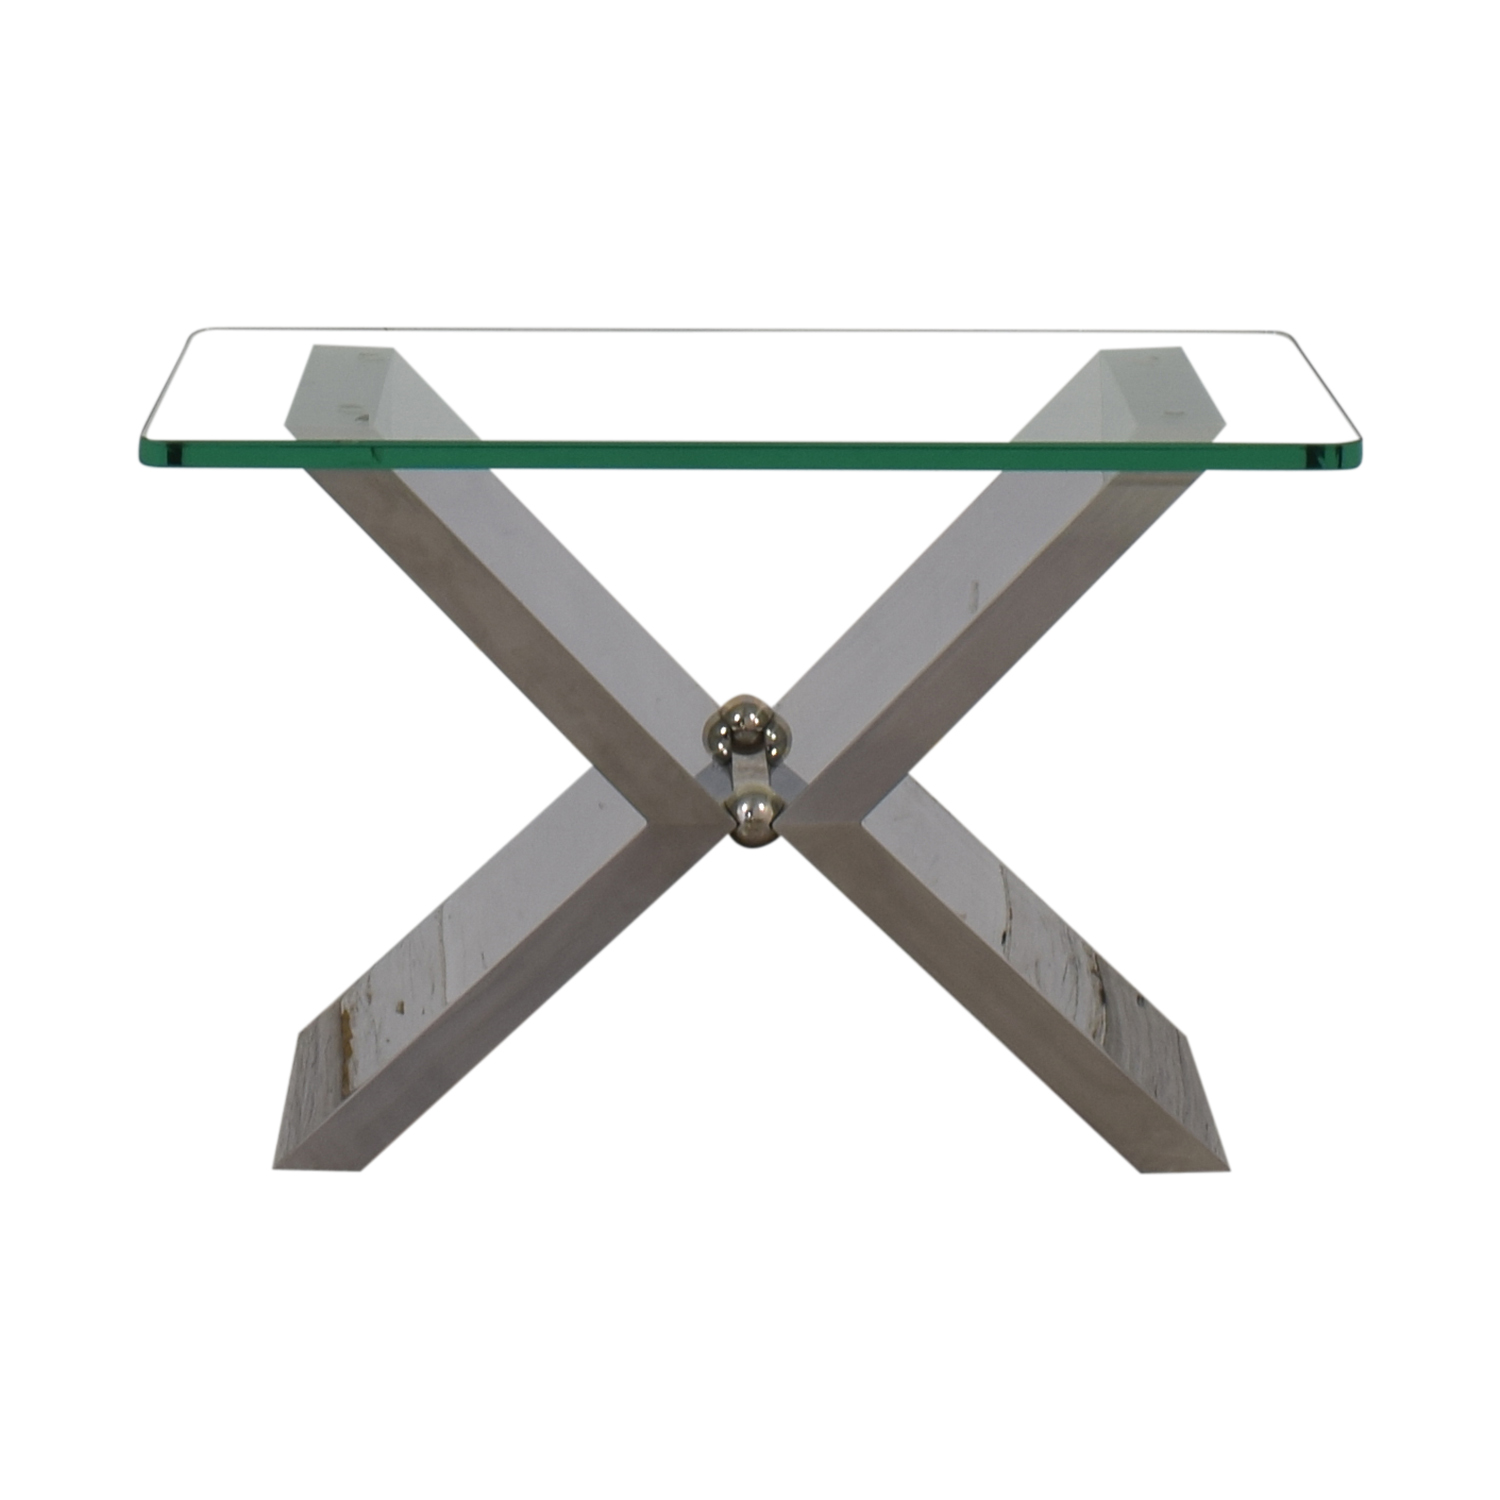 J Robert Scott J Robert Scott Modern Glass and Steel Side Table for sale